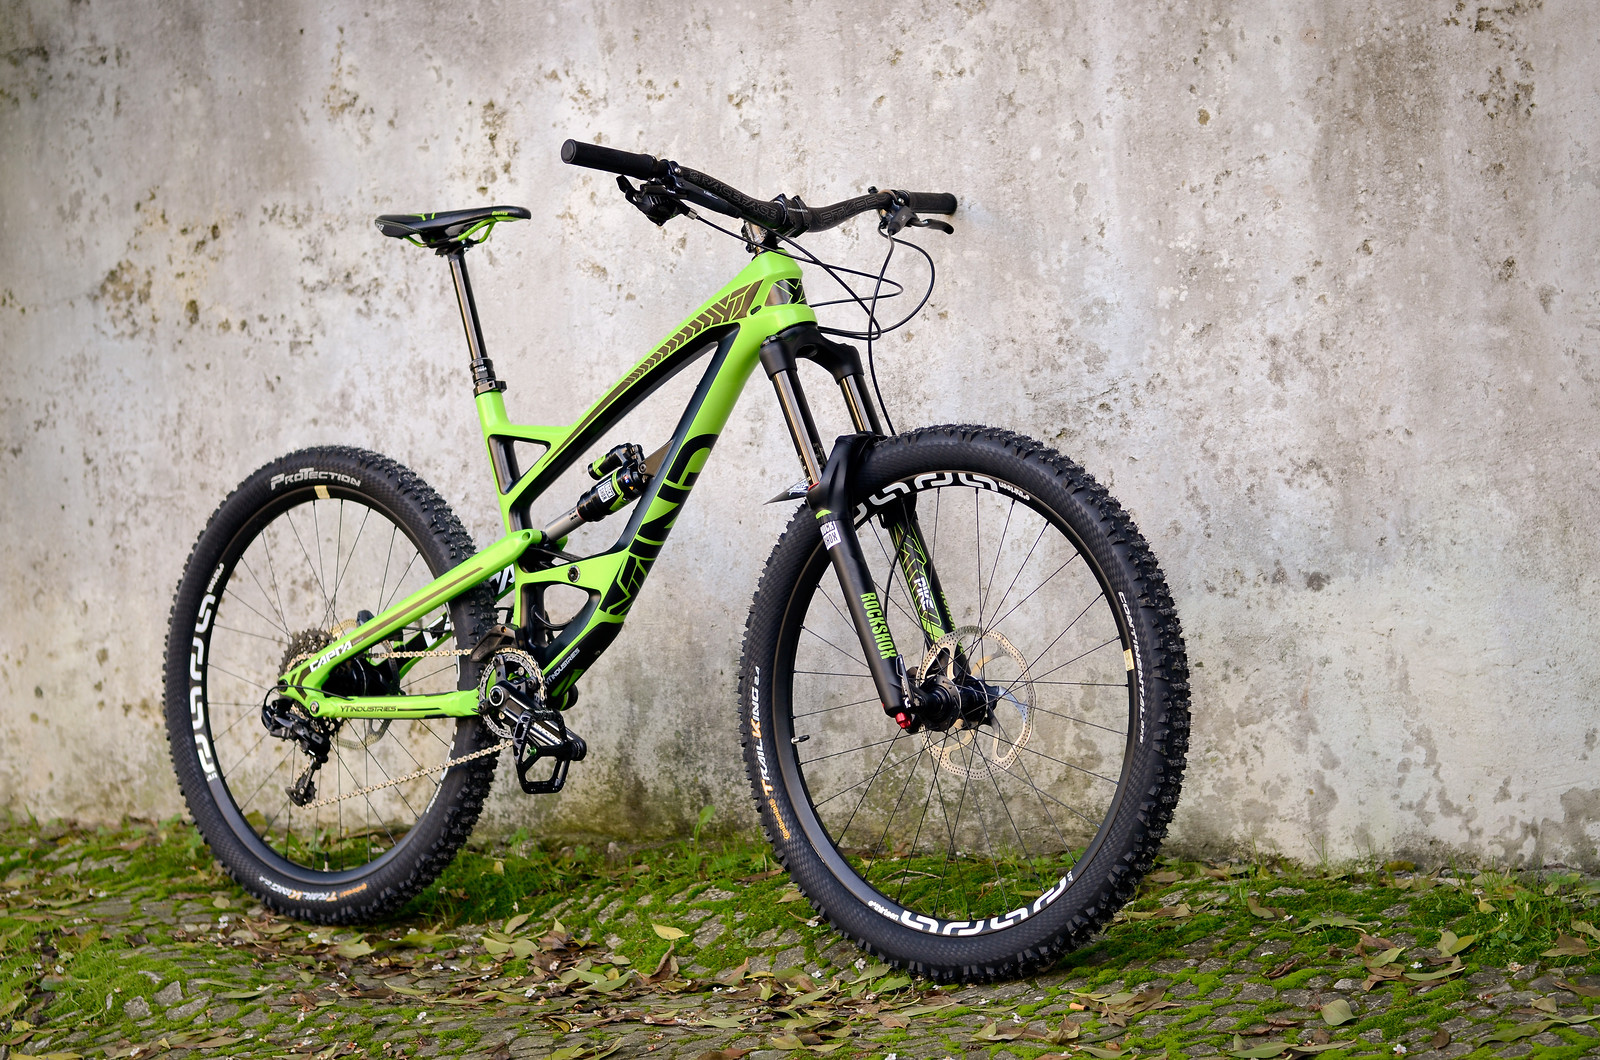 Yt industries capra cf comp 1 2014 16